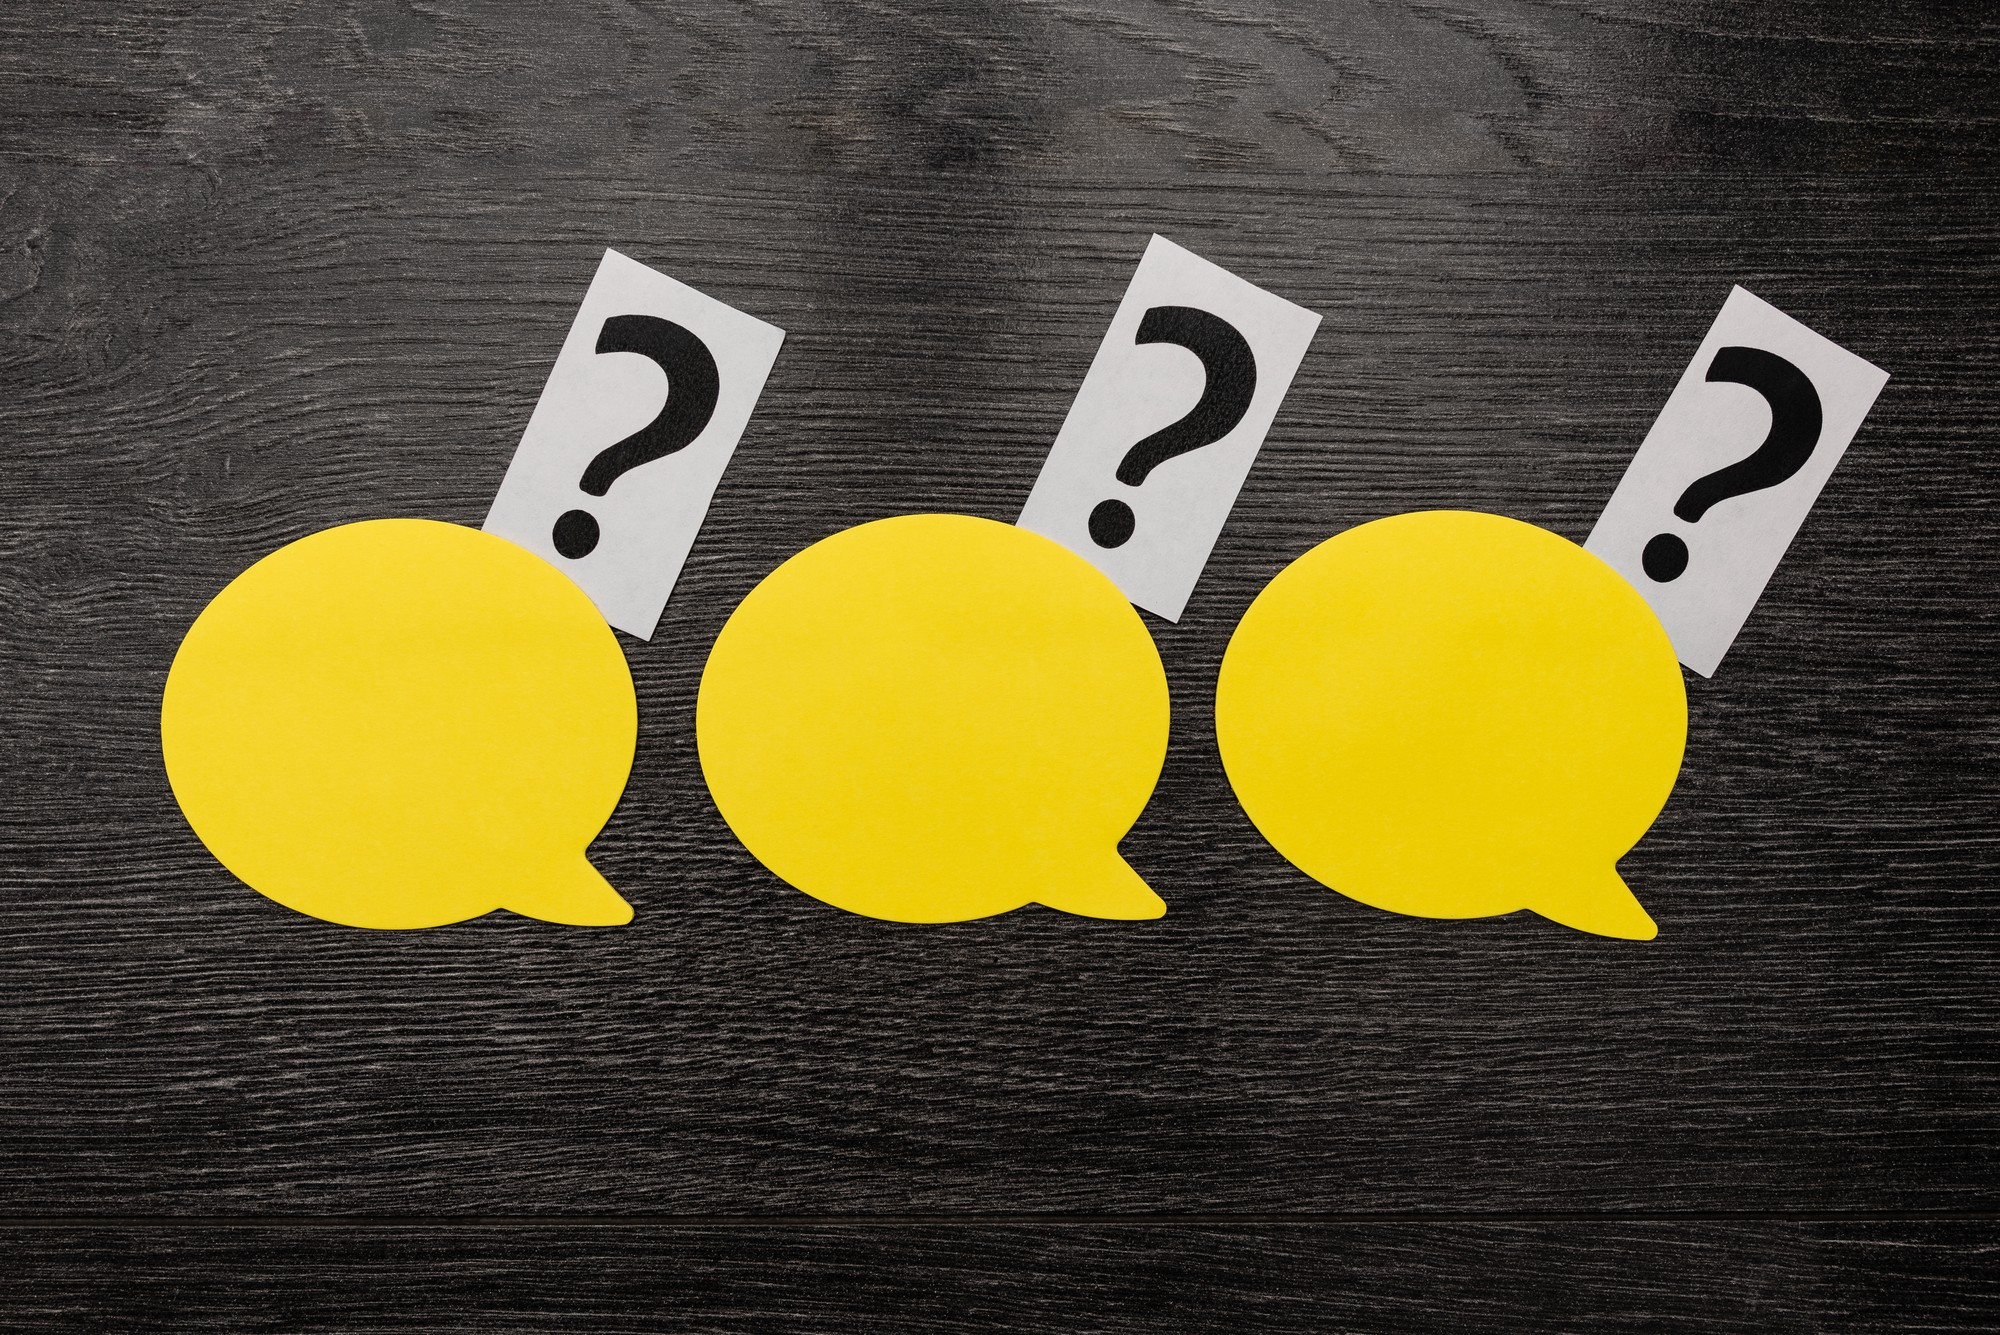 three yellow speech bubbles with question marks